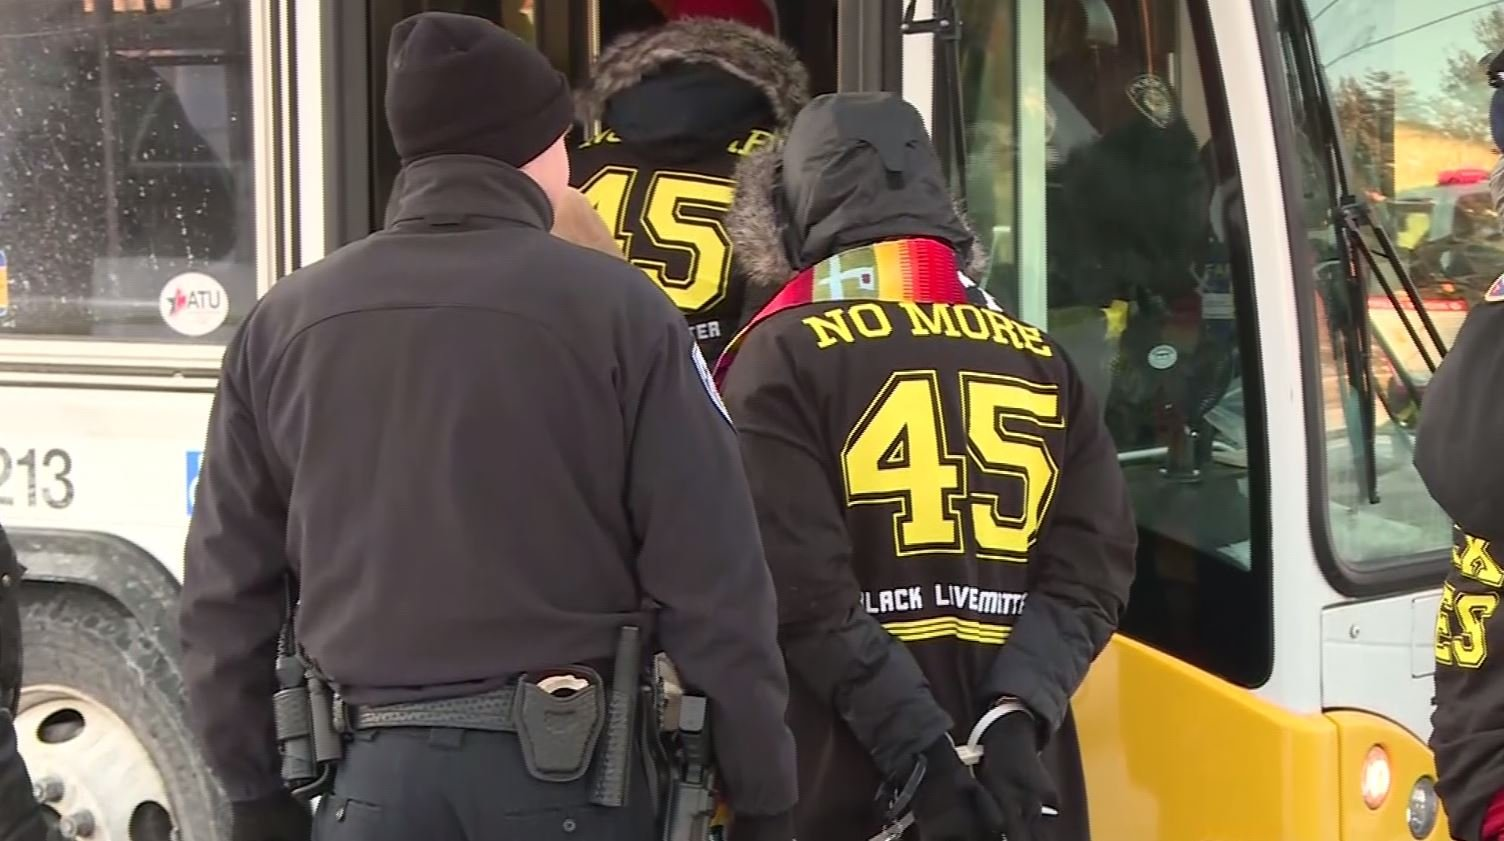 Several people were arrested at the West Bank rail station not far from downtown Minneapolis, Minnesota, Sunday afternoon. An officer said there were 17 arrests and that the protesters were part of Black Lives Matter. (Source: CNN)